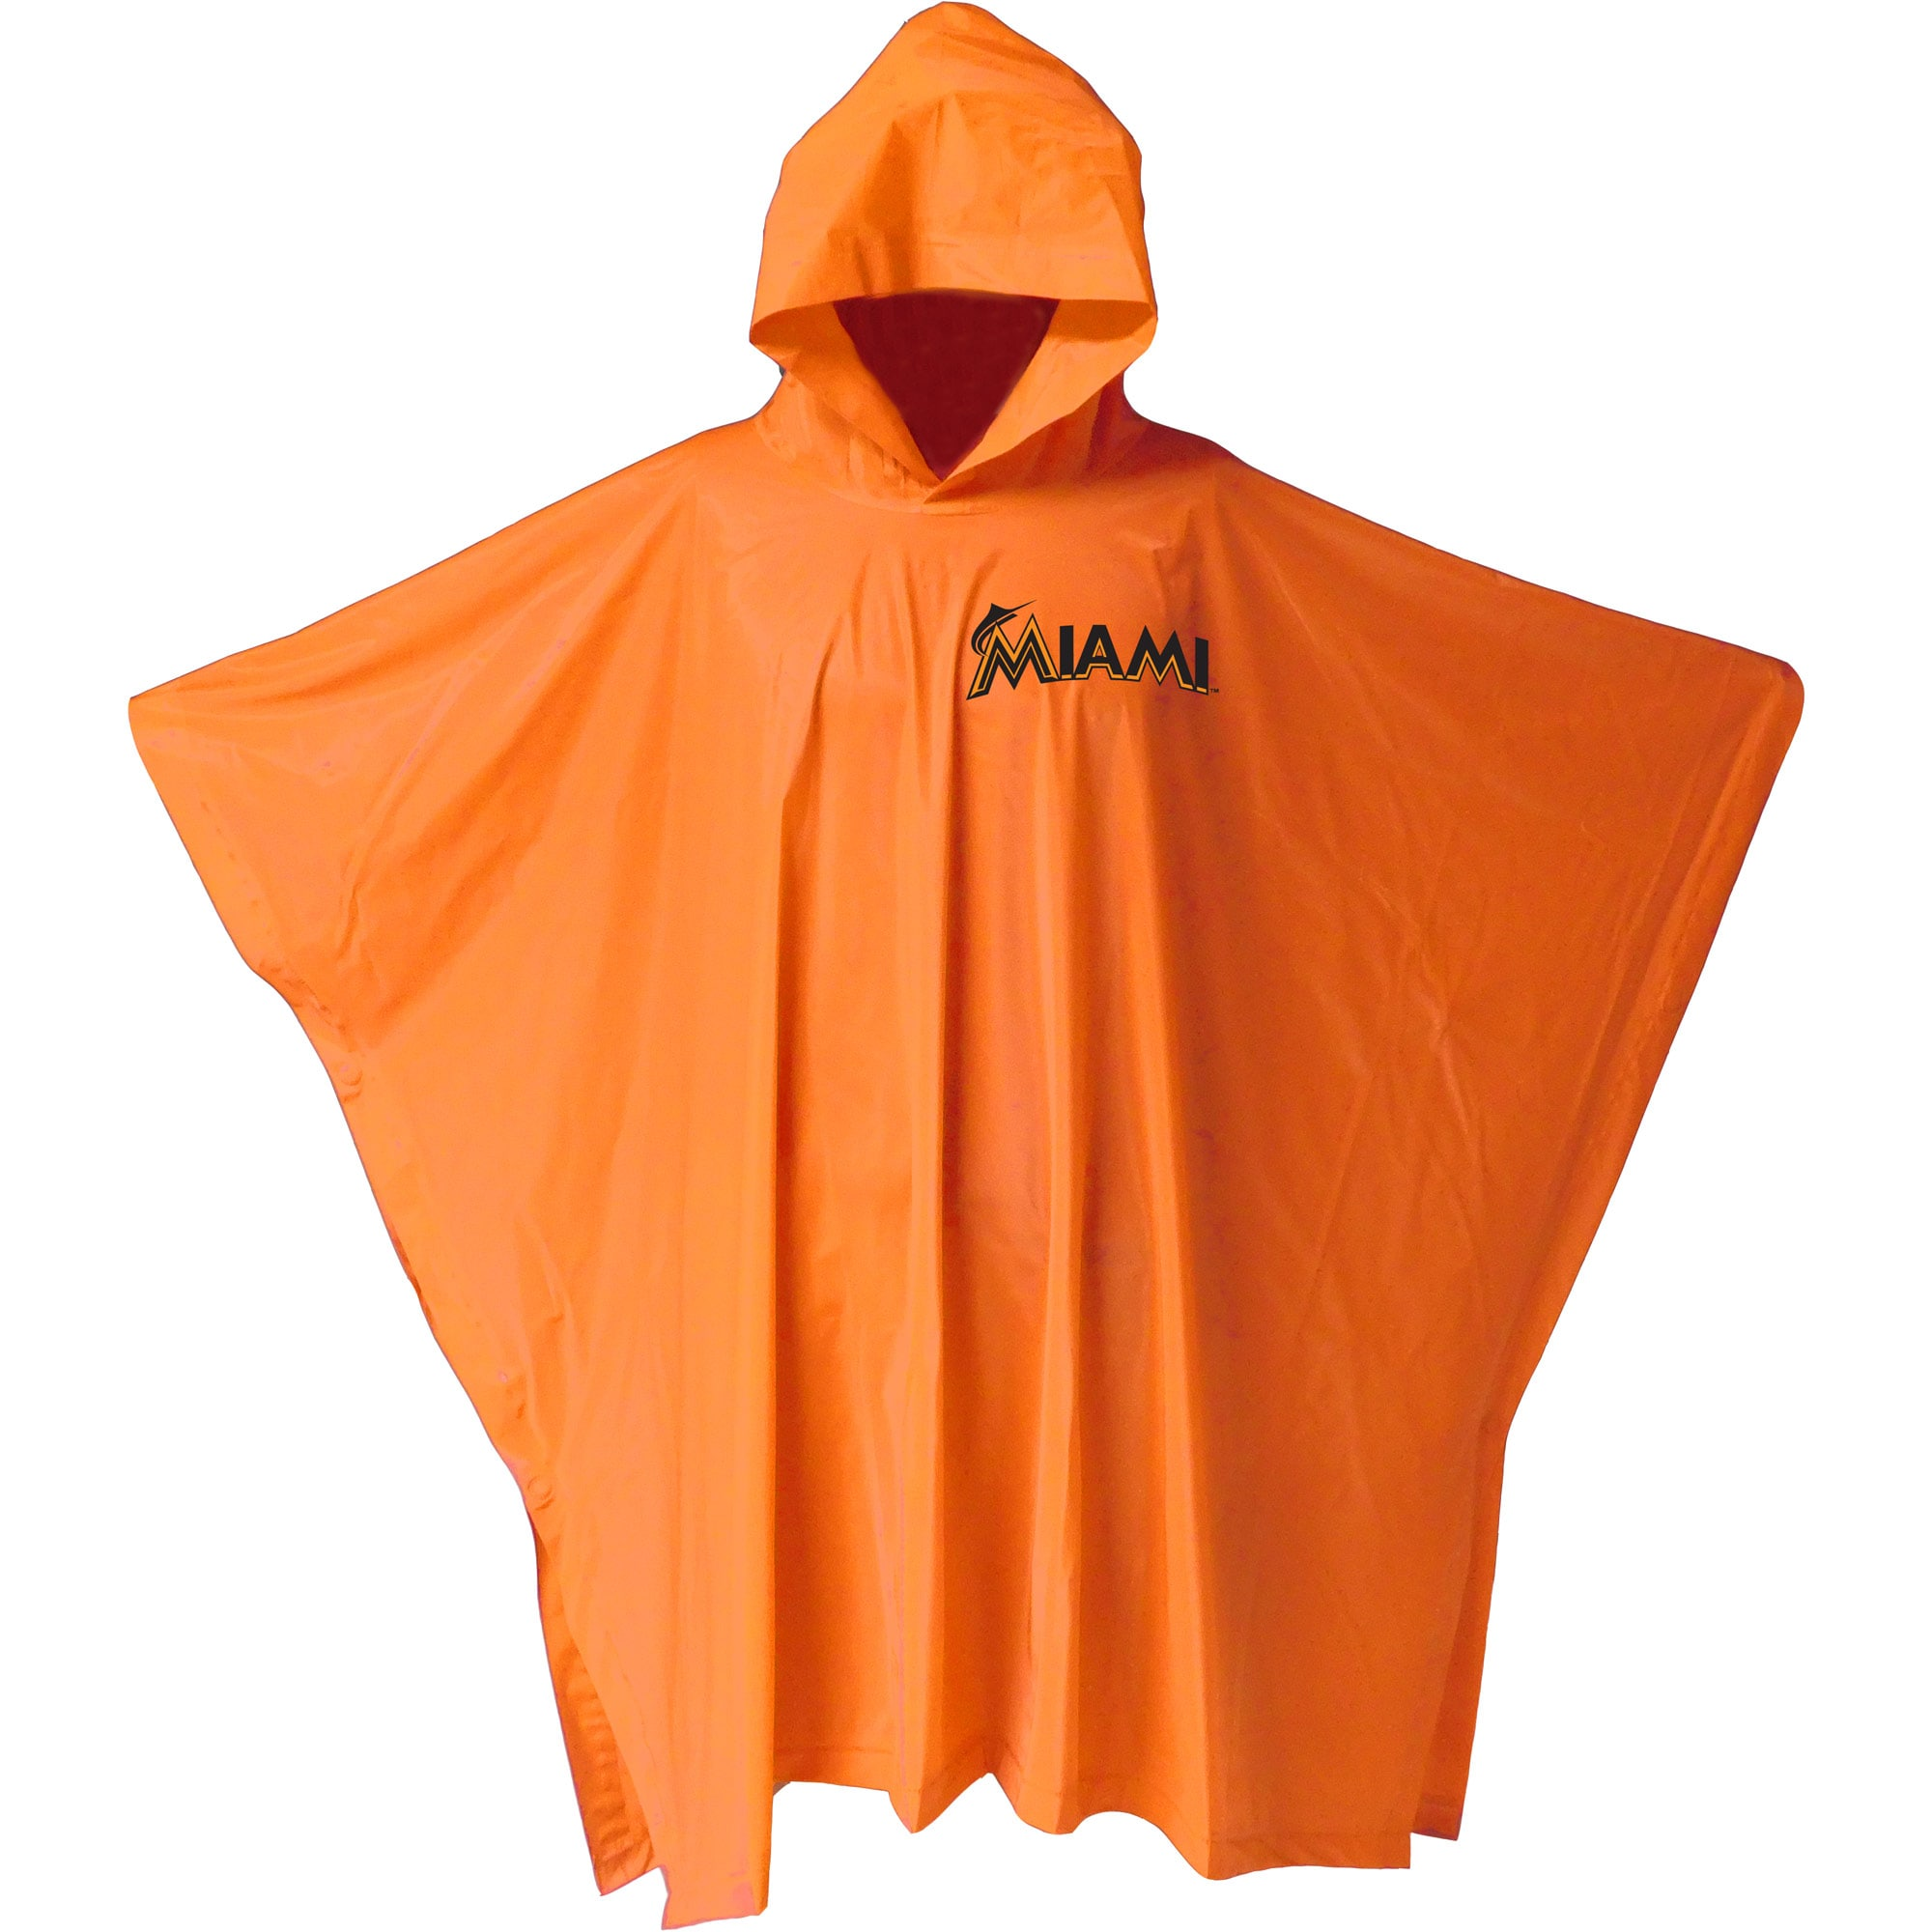 Miami Marlins Stadium Poncho